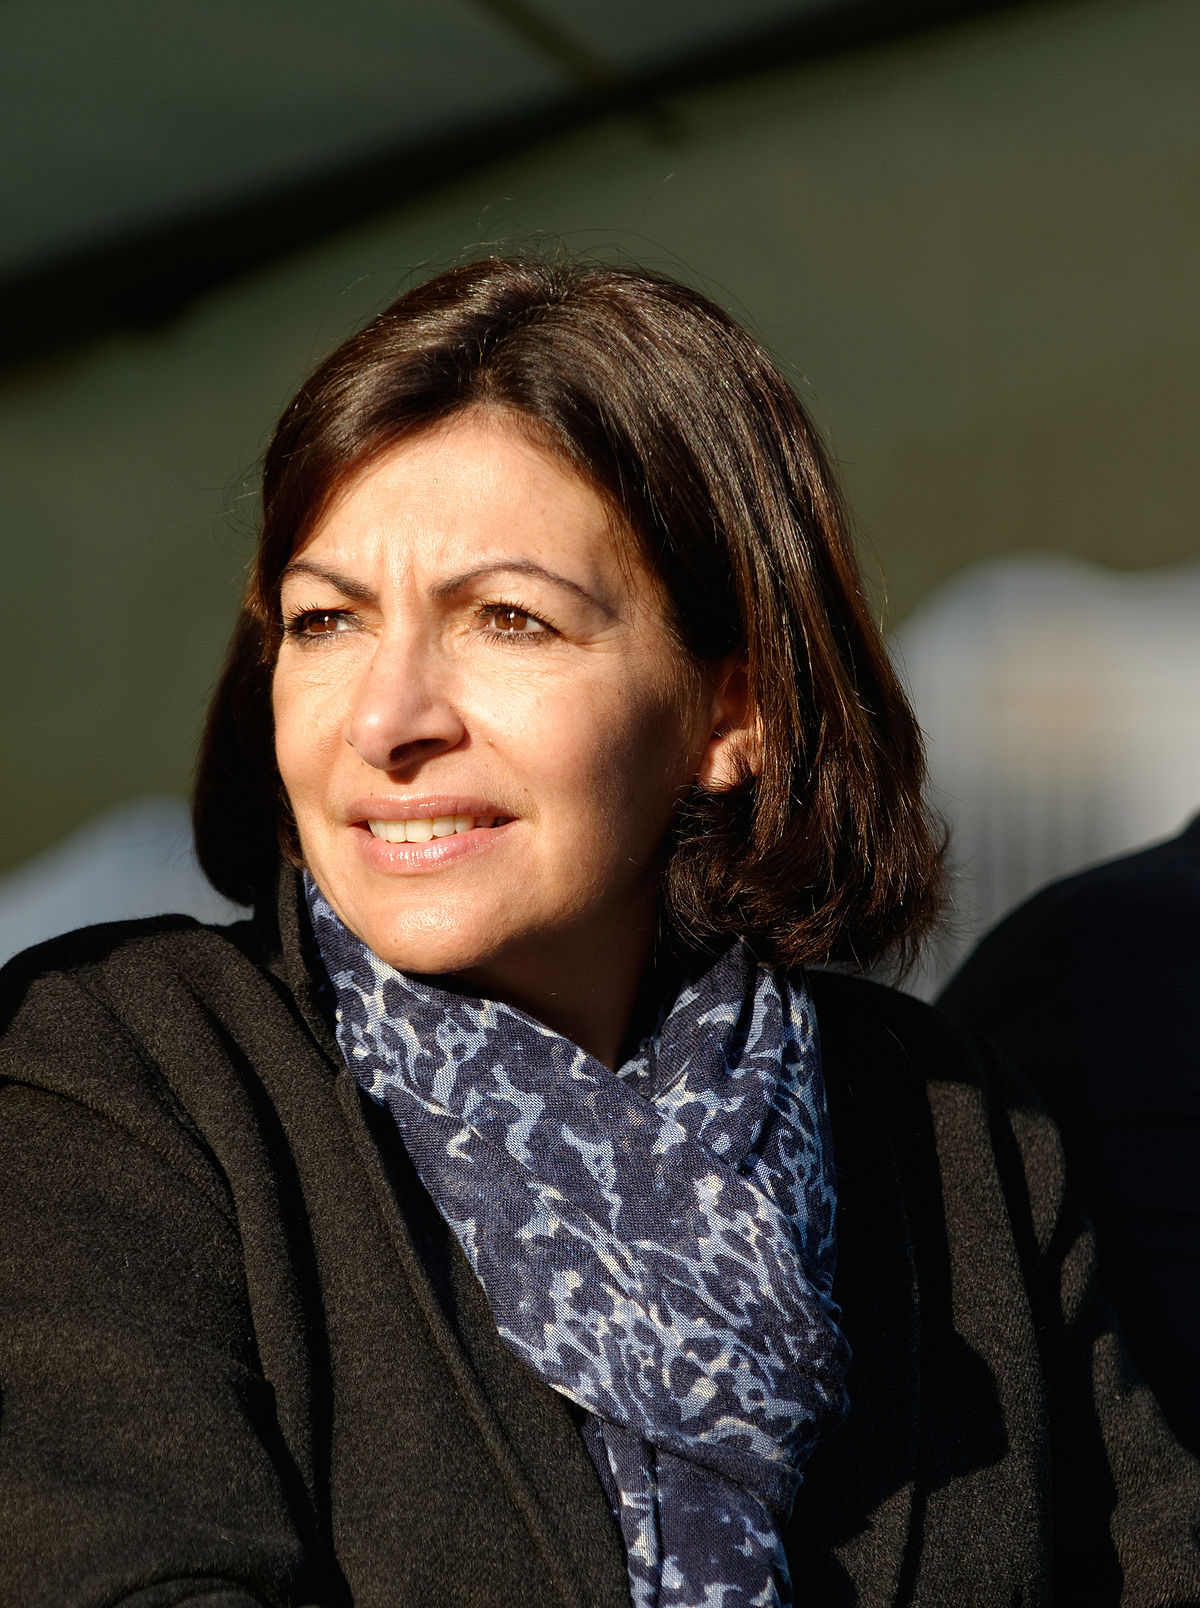 anne hidalgo wikiquote le recueil de citations libres. Black Bedroom Furniture Sets. Home Design Ideas